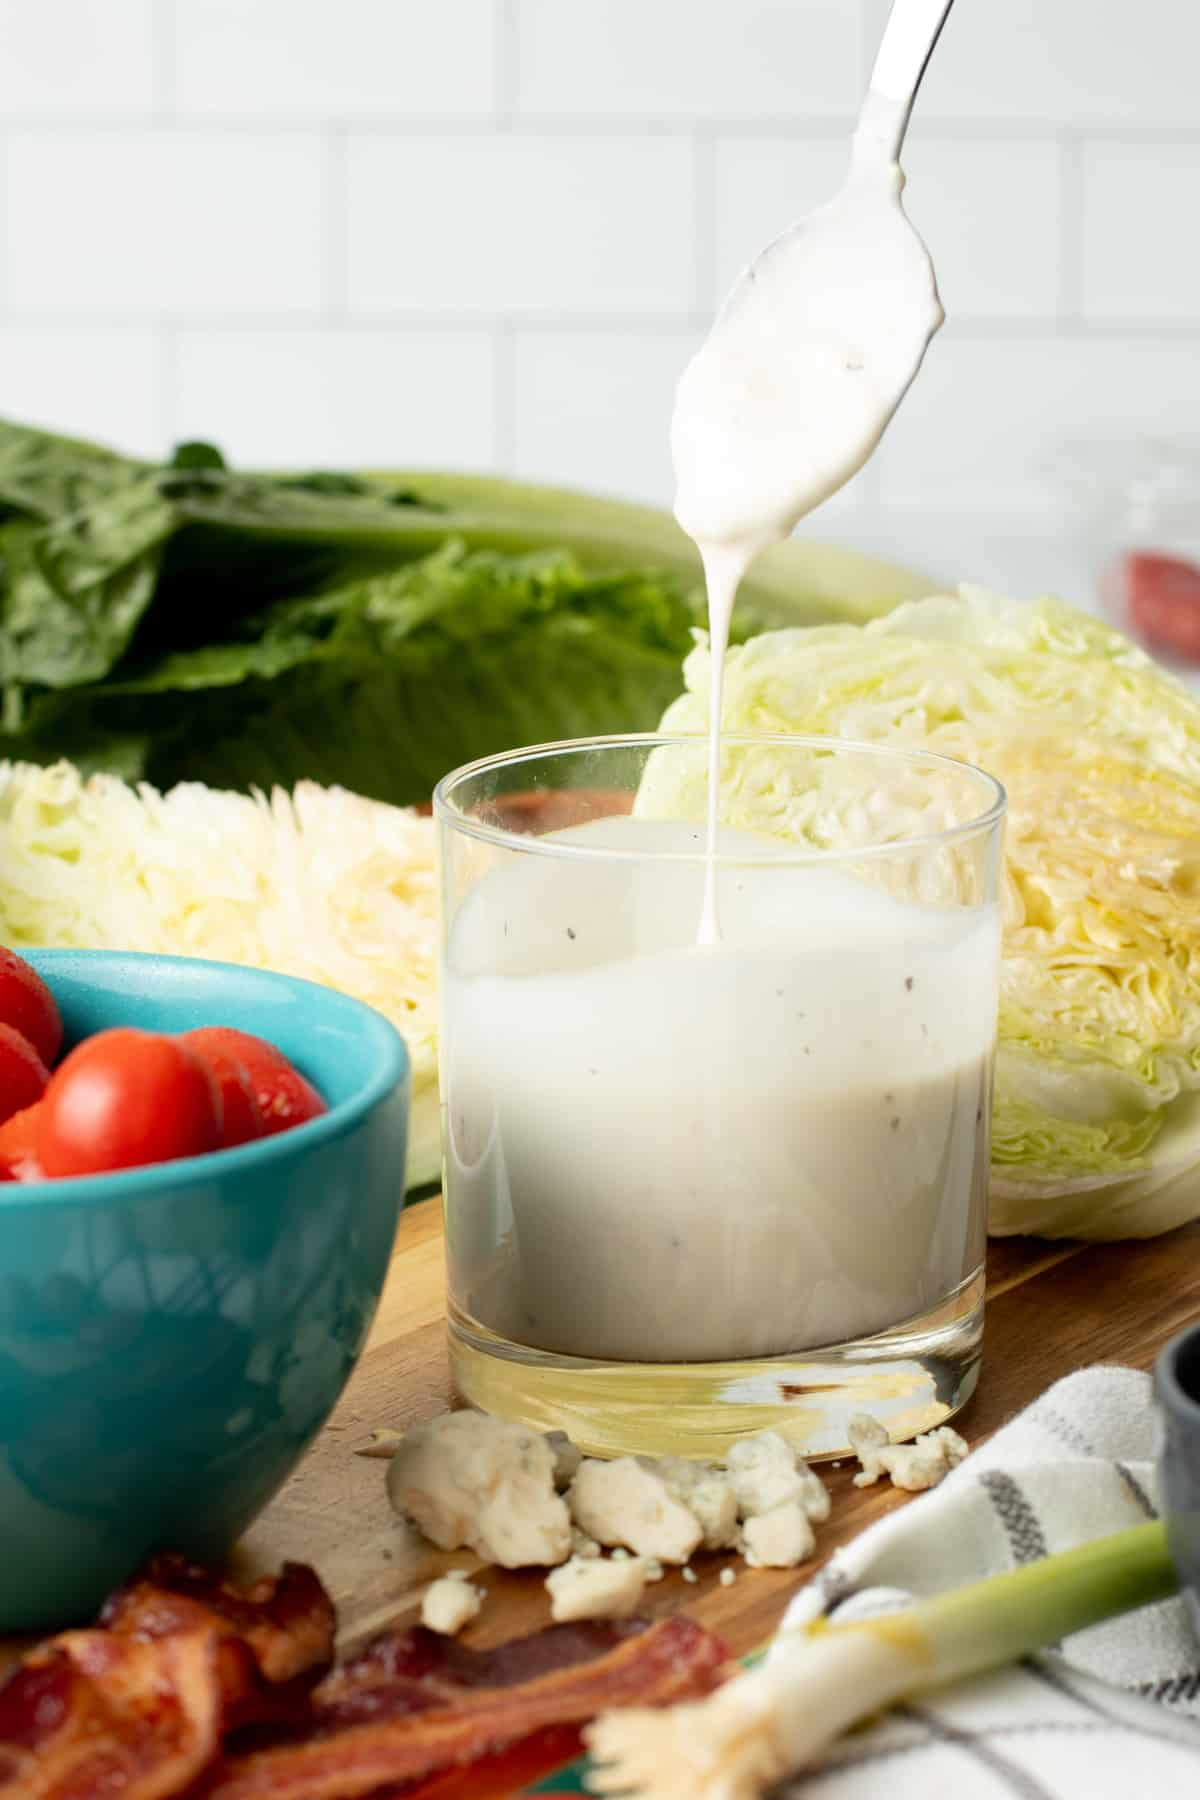 A spoon drizzles blue cheese dressing into a glass of dressing.